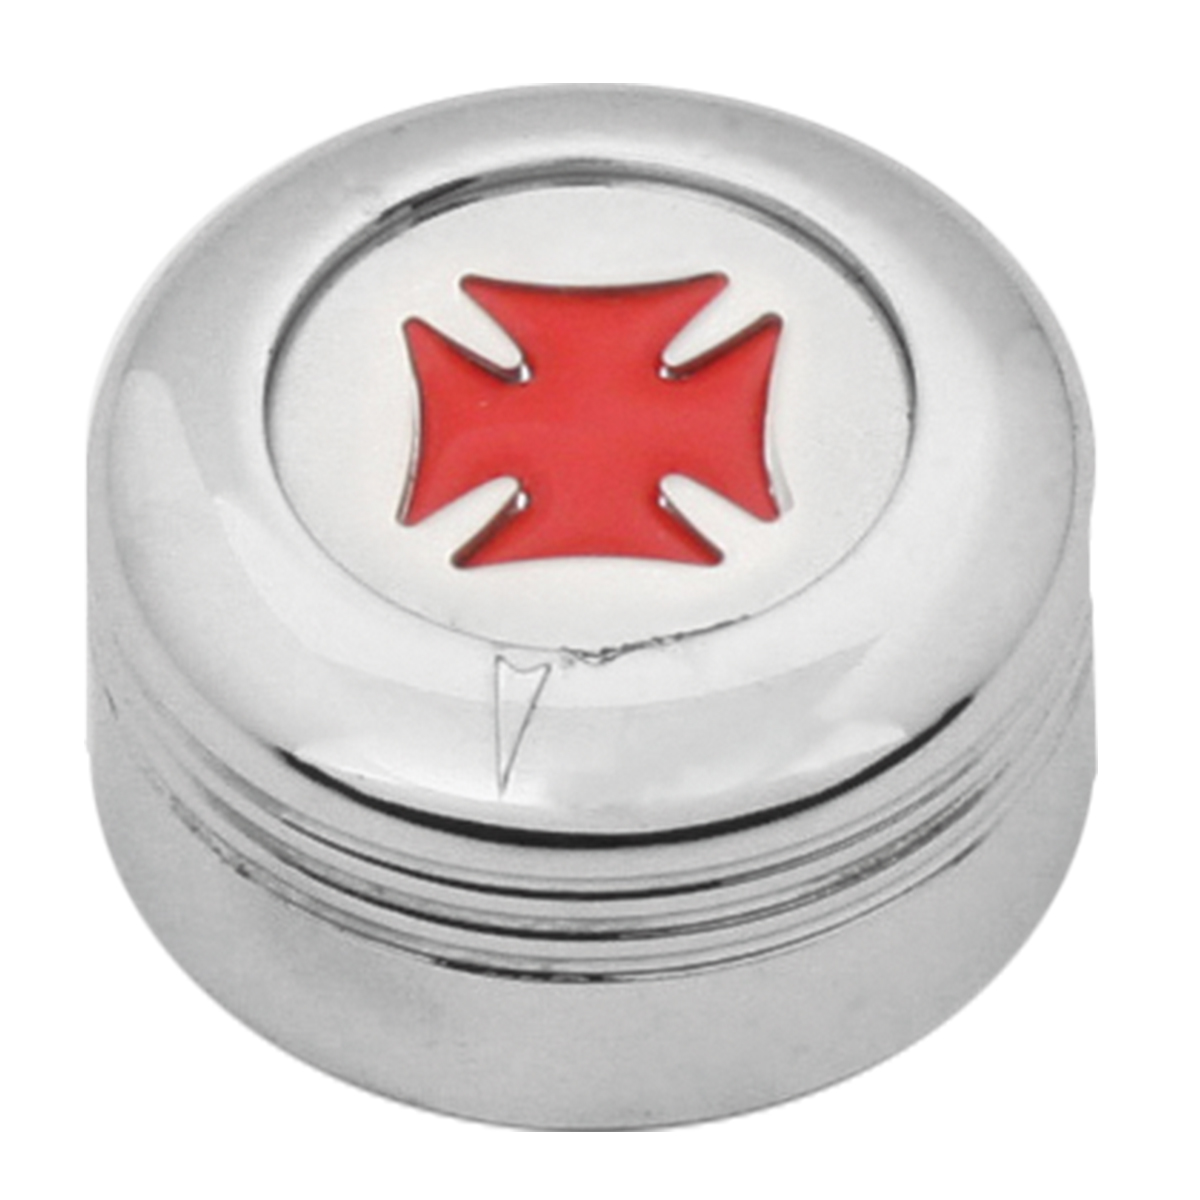 Chrome Plastic A/C Knob w/ Red Iron Cross for Pete